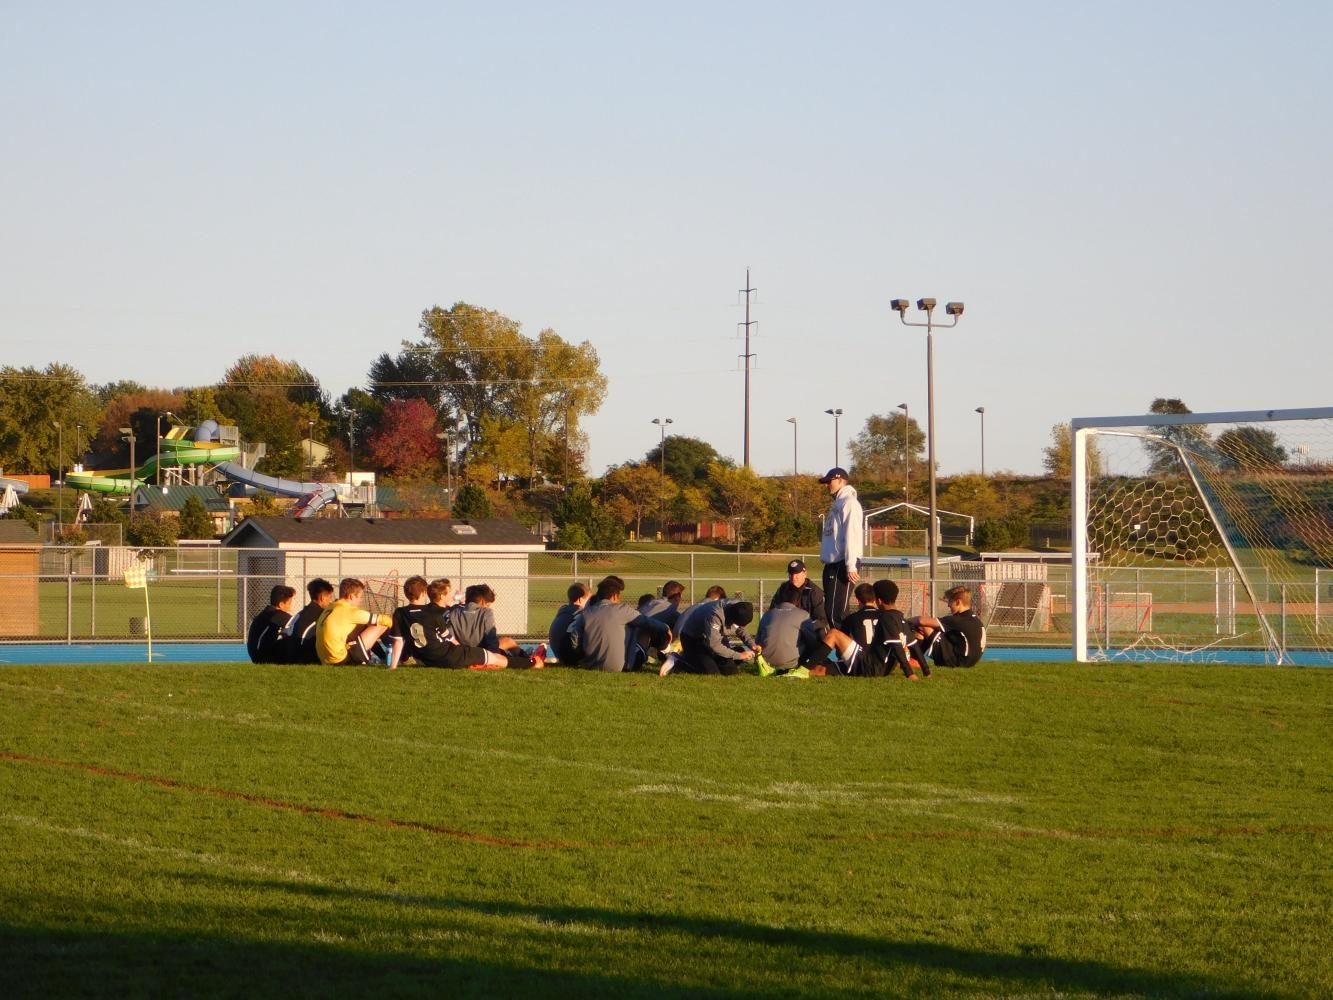 The team soaks in the sun and the play plans.